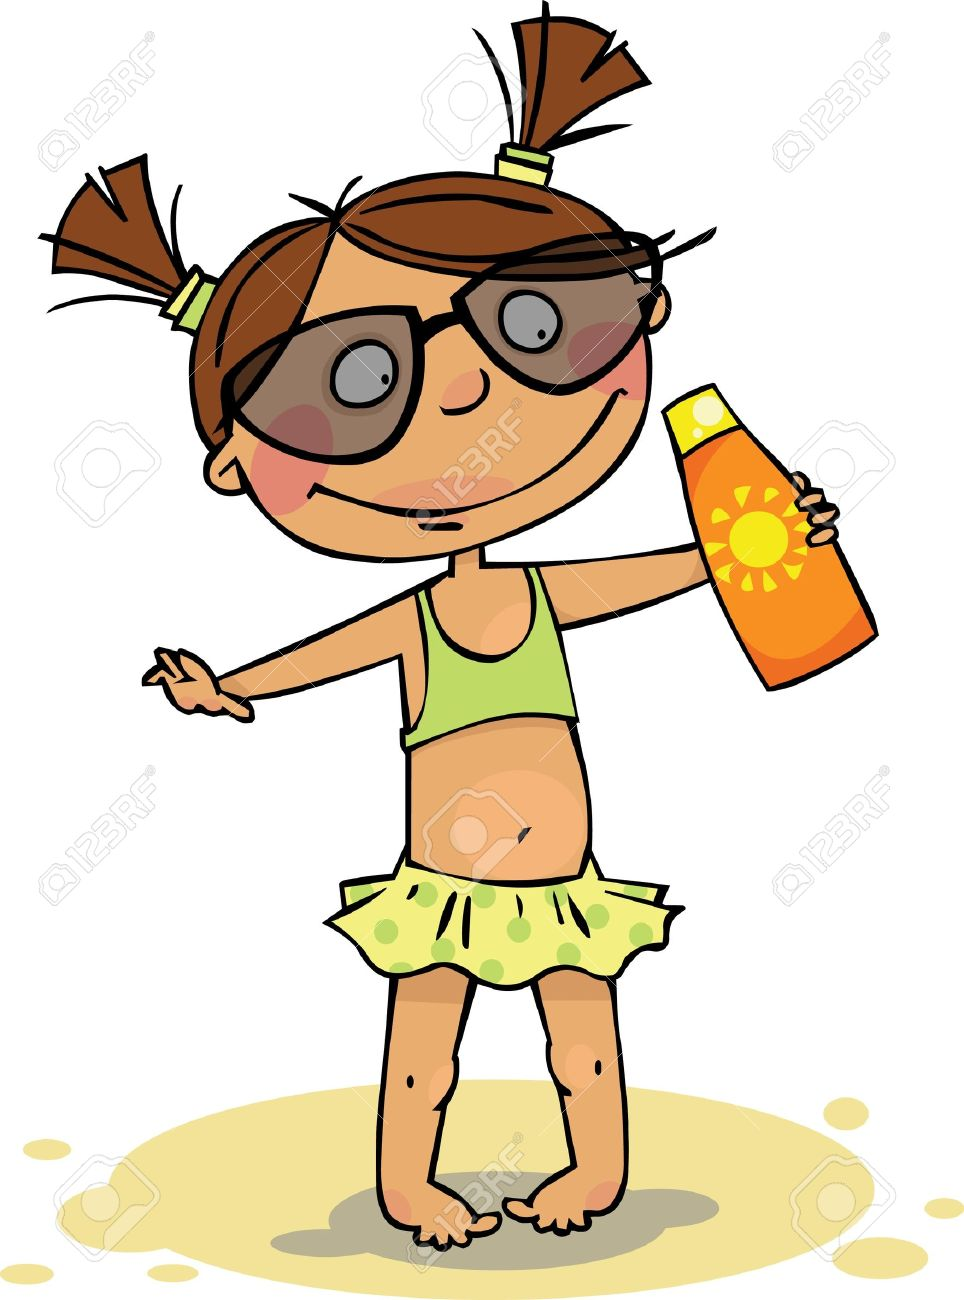 clip royalty free download Kid sunscreen clipart. Images free download best